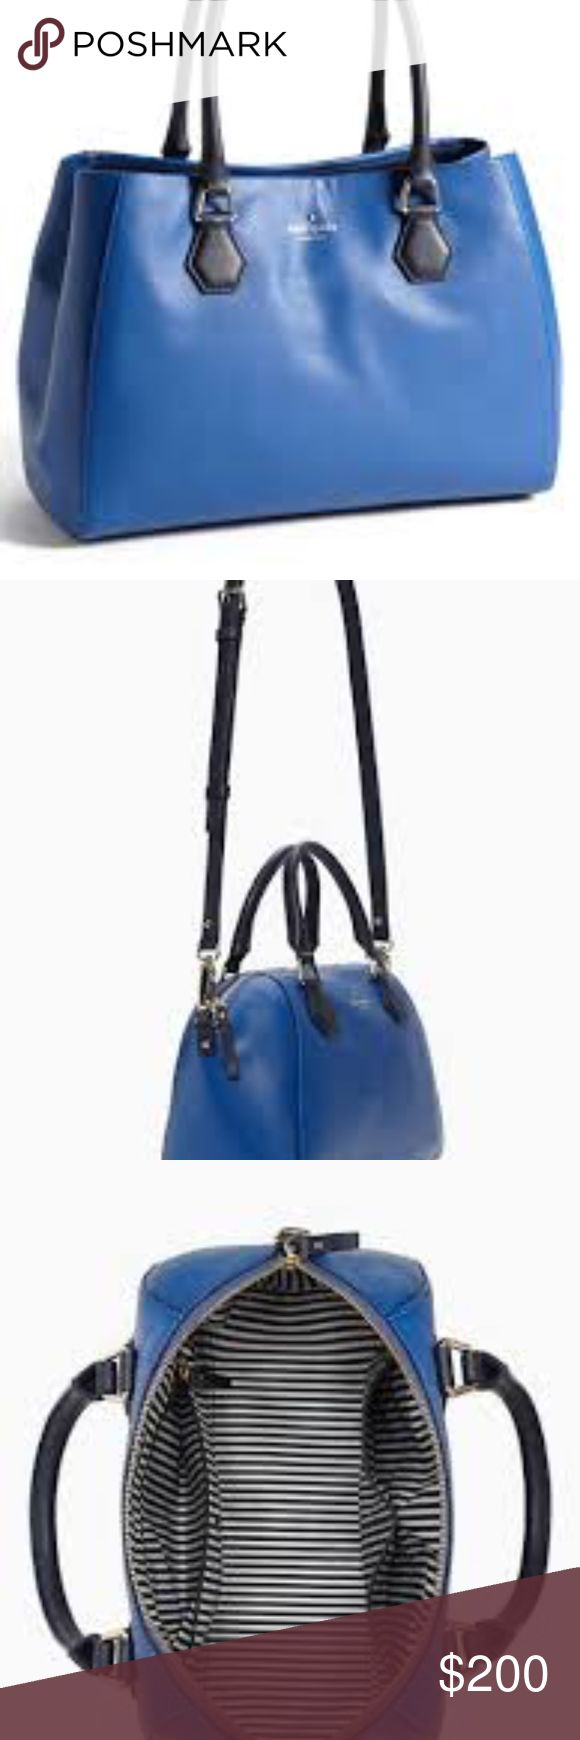 Kate Spade Catherine Street Bluebell This bad is crafted in a luxe leather, this handbag features an adjustable shoulder strap and a zipper closure to keep your essentials and on-the-go accoutrements safely stowed. It is lightly used but in great condition! kate spade Bags